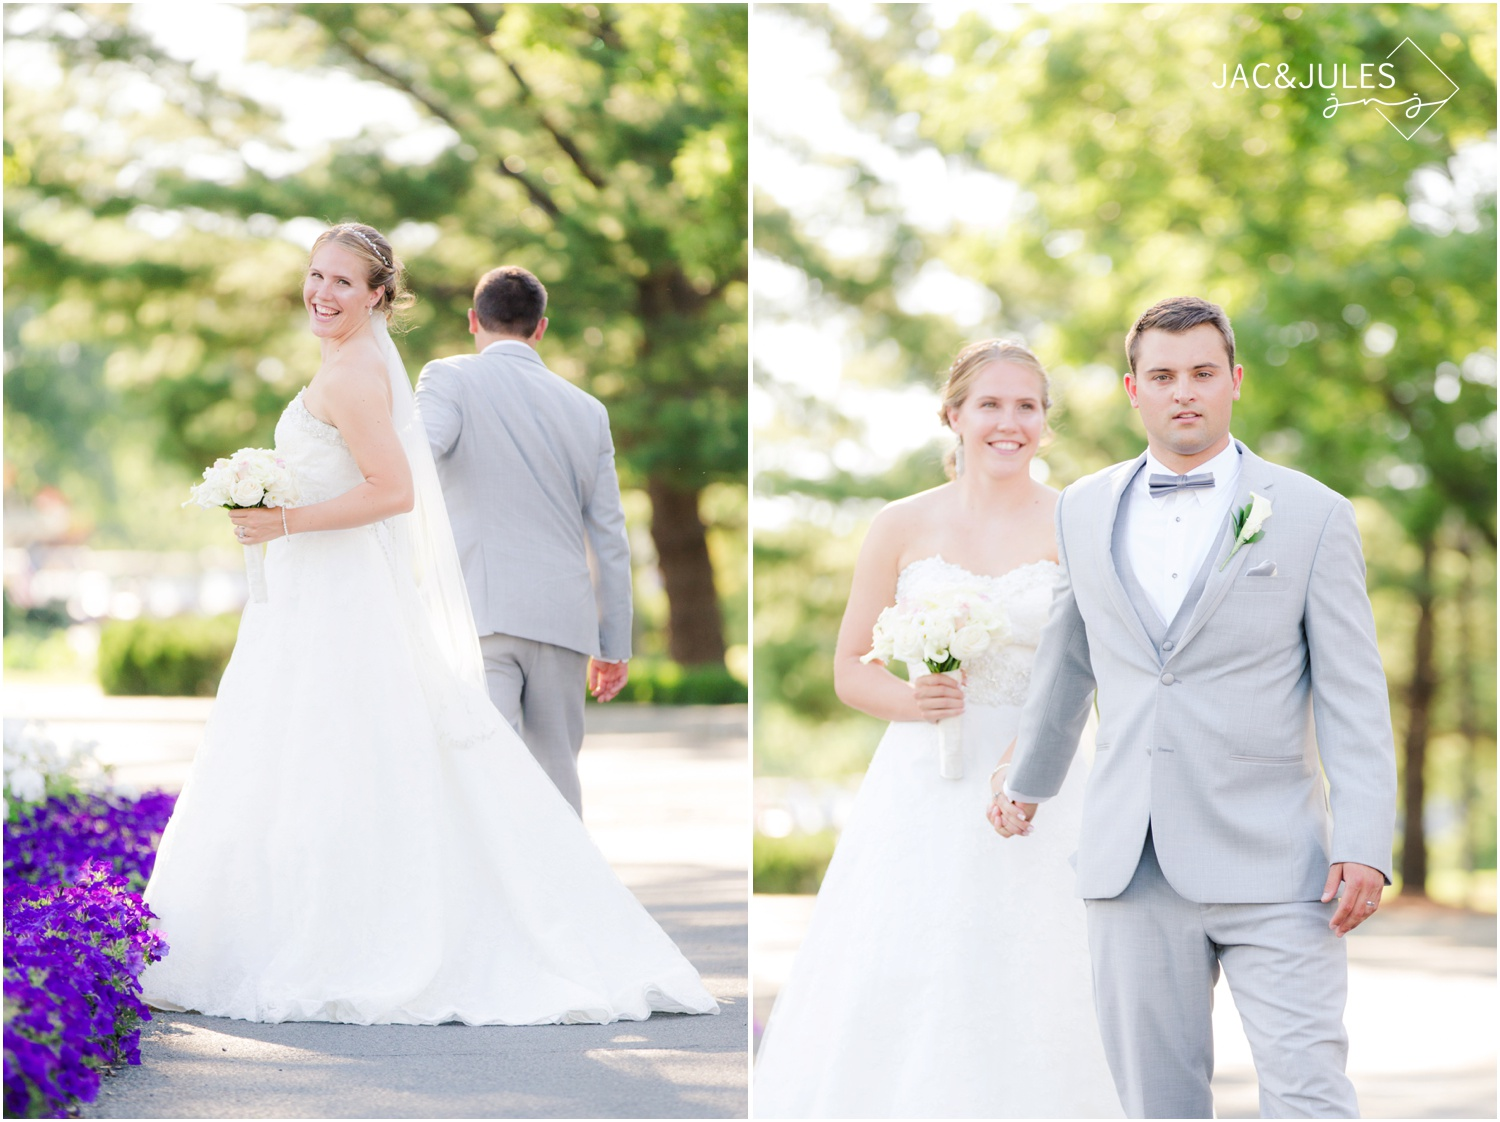 bride and groom photos at forsgate country club in Monroe, NJ.